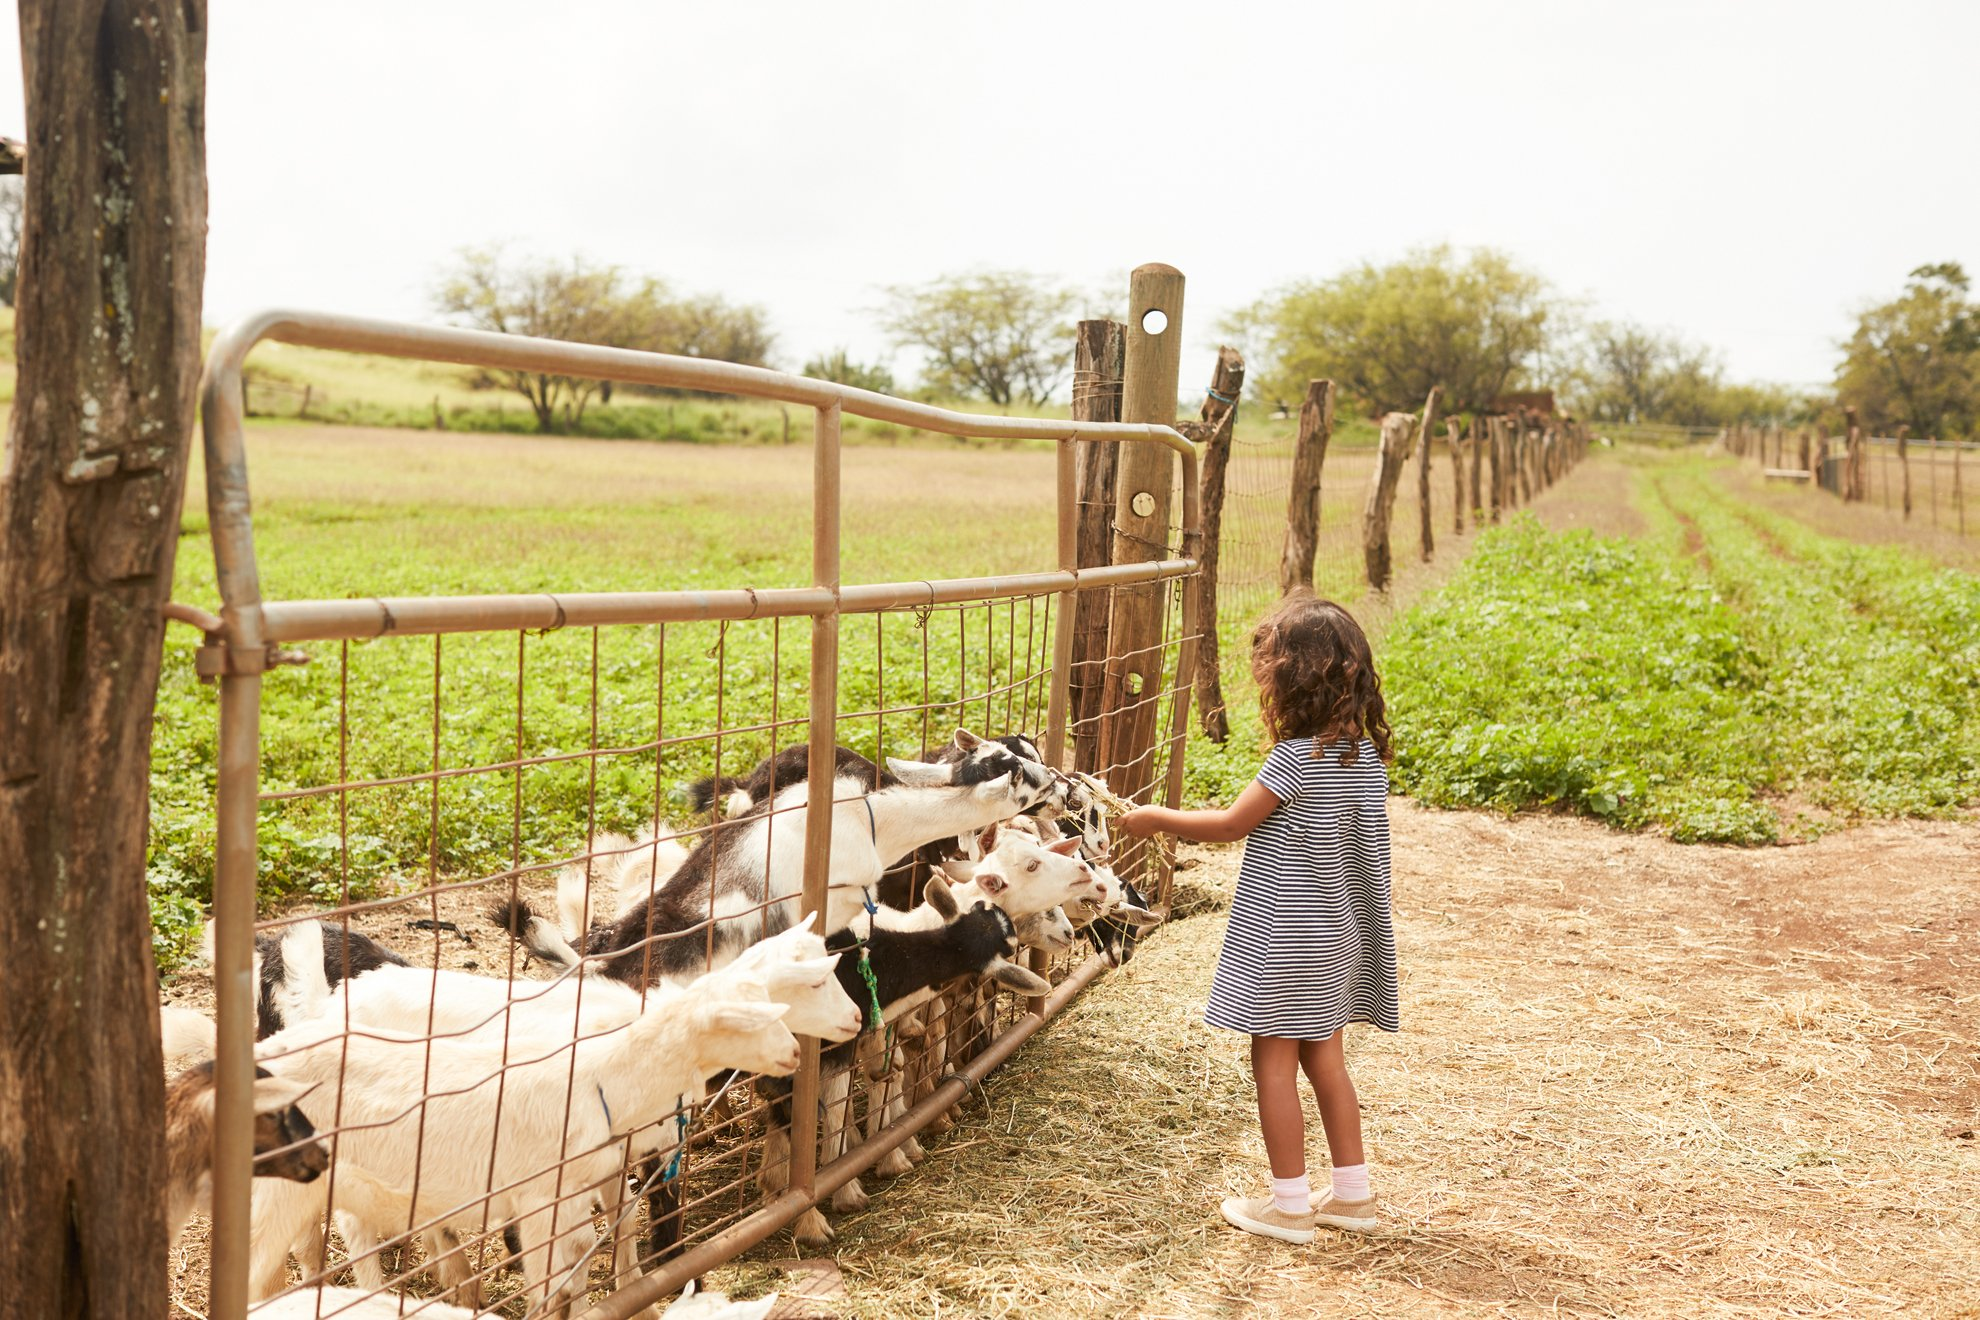 A little girl feeds pygmy goats at Surfing Goat Dairy Farm.